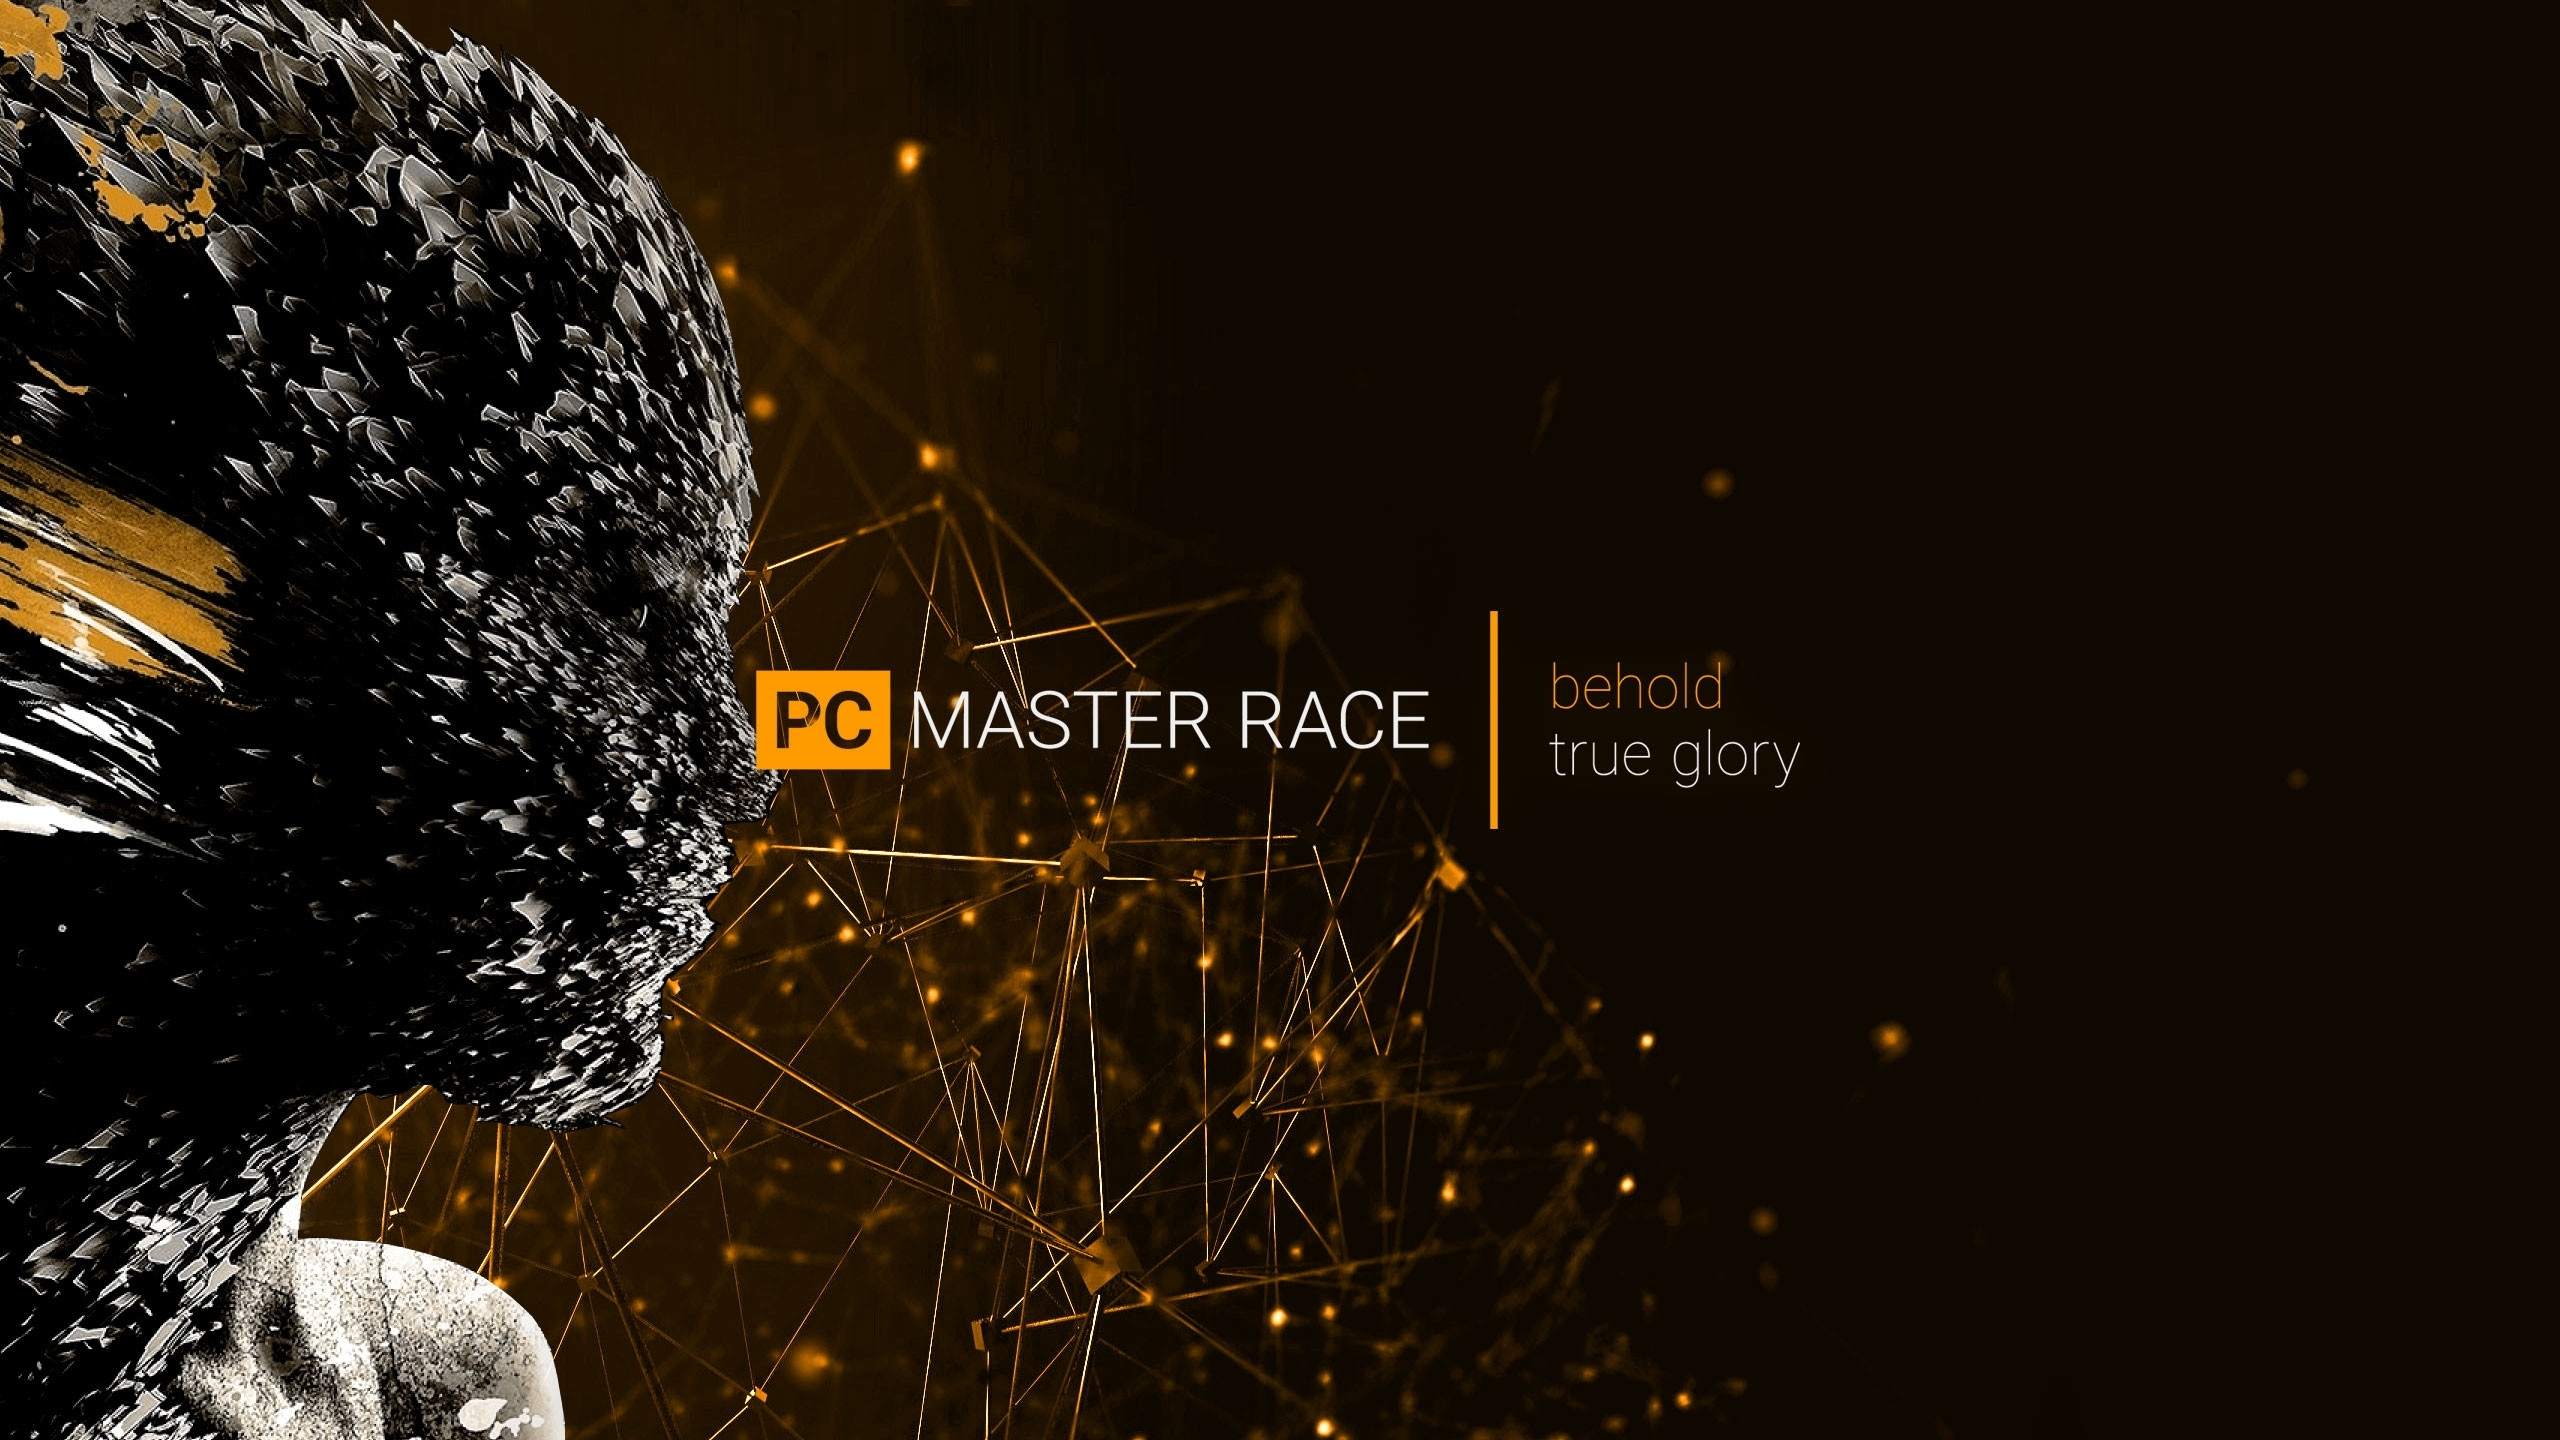 pc master race wallpaper (82+ images)